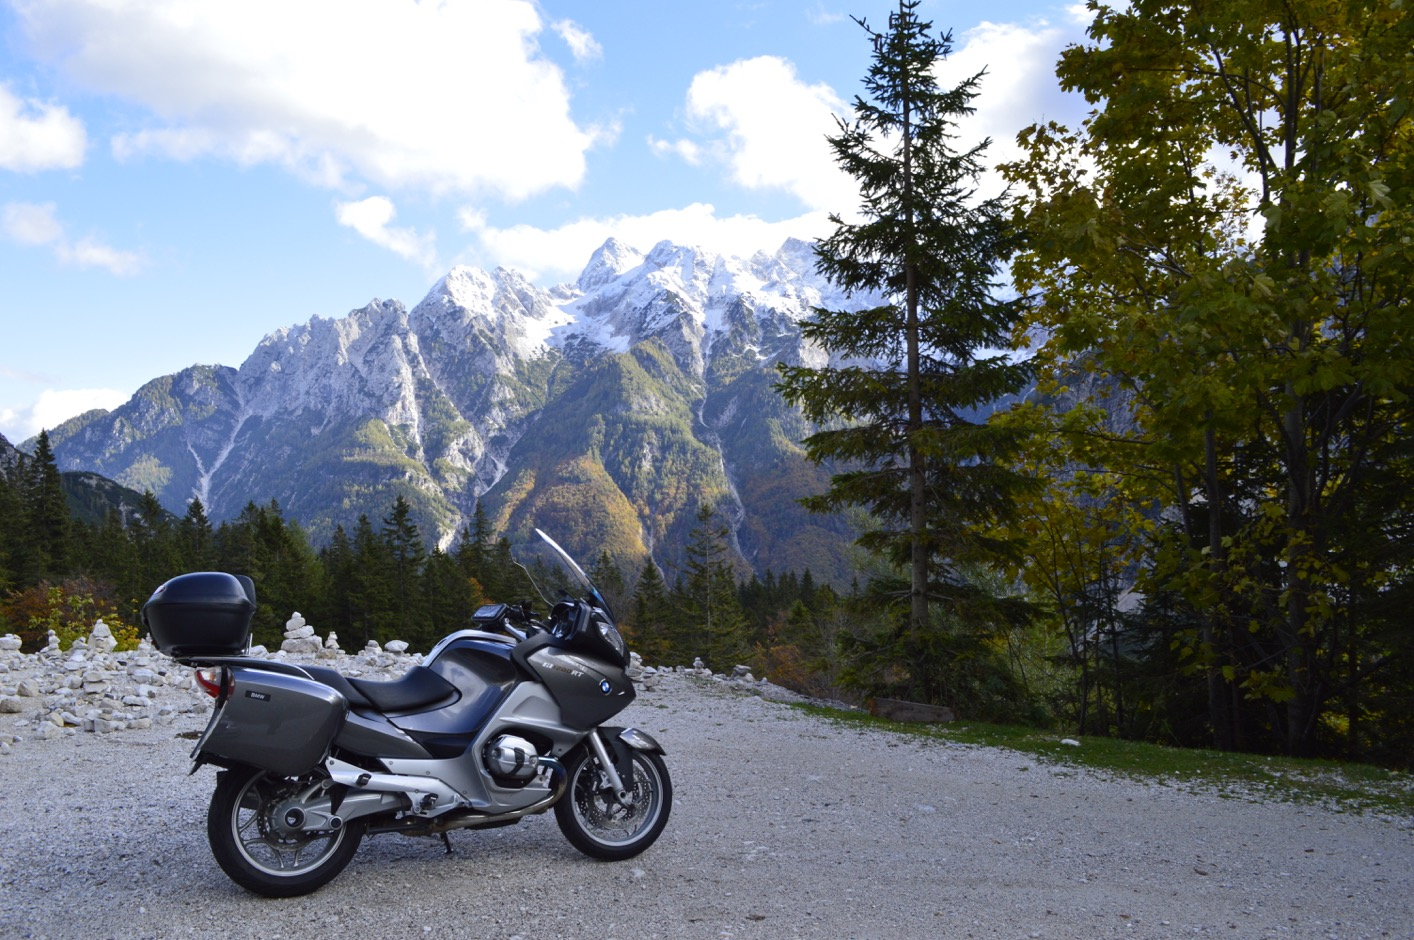 BMW in mountains Julian Alps 940 - 1